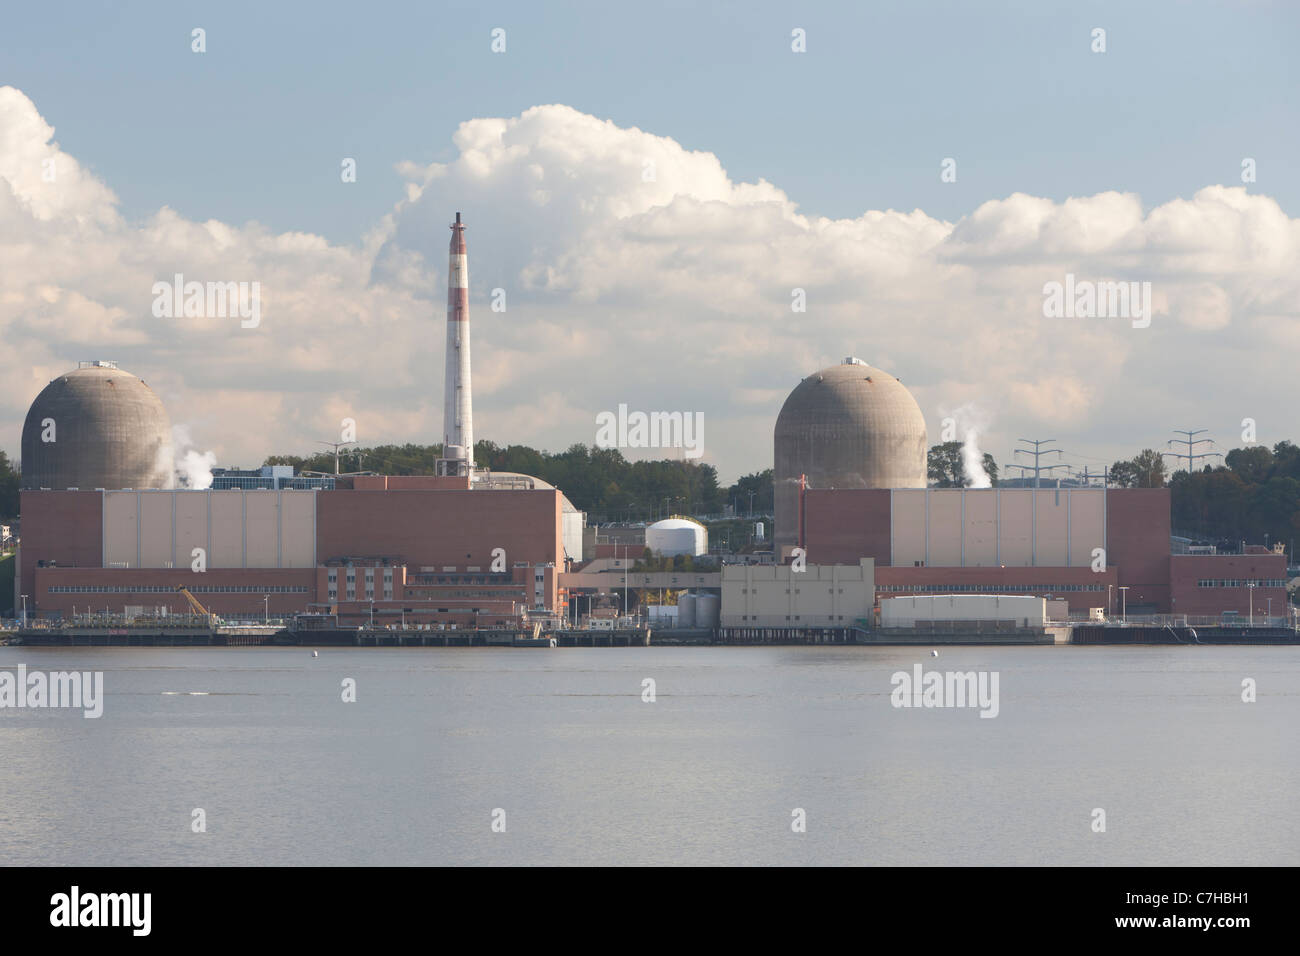 Indian Point Energy Center, a nuclear power plant on the Hudson River in Buchanan, New York. - Stock Image